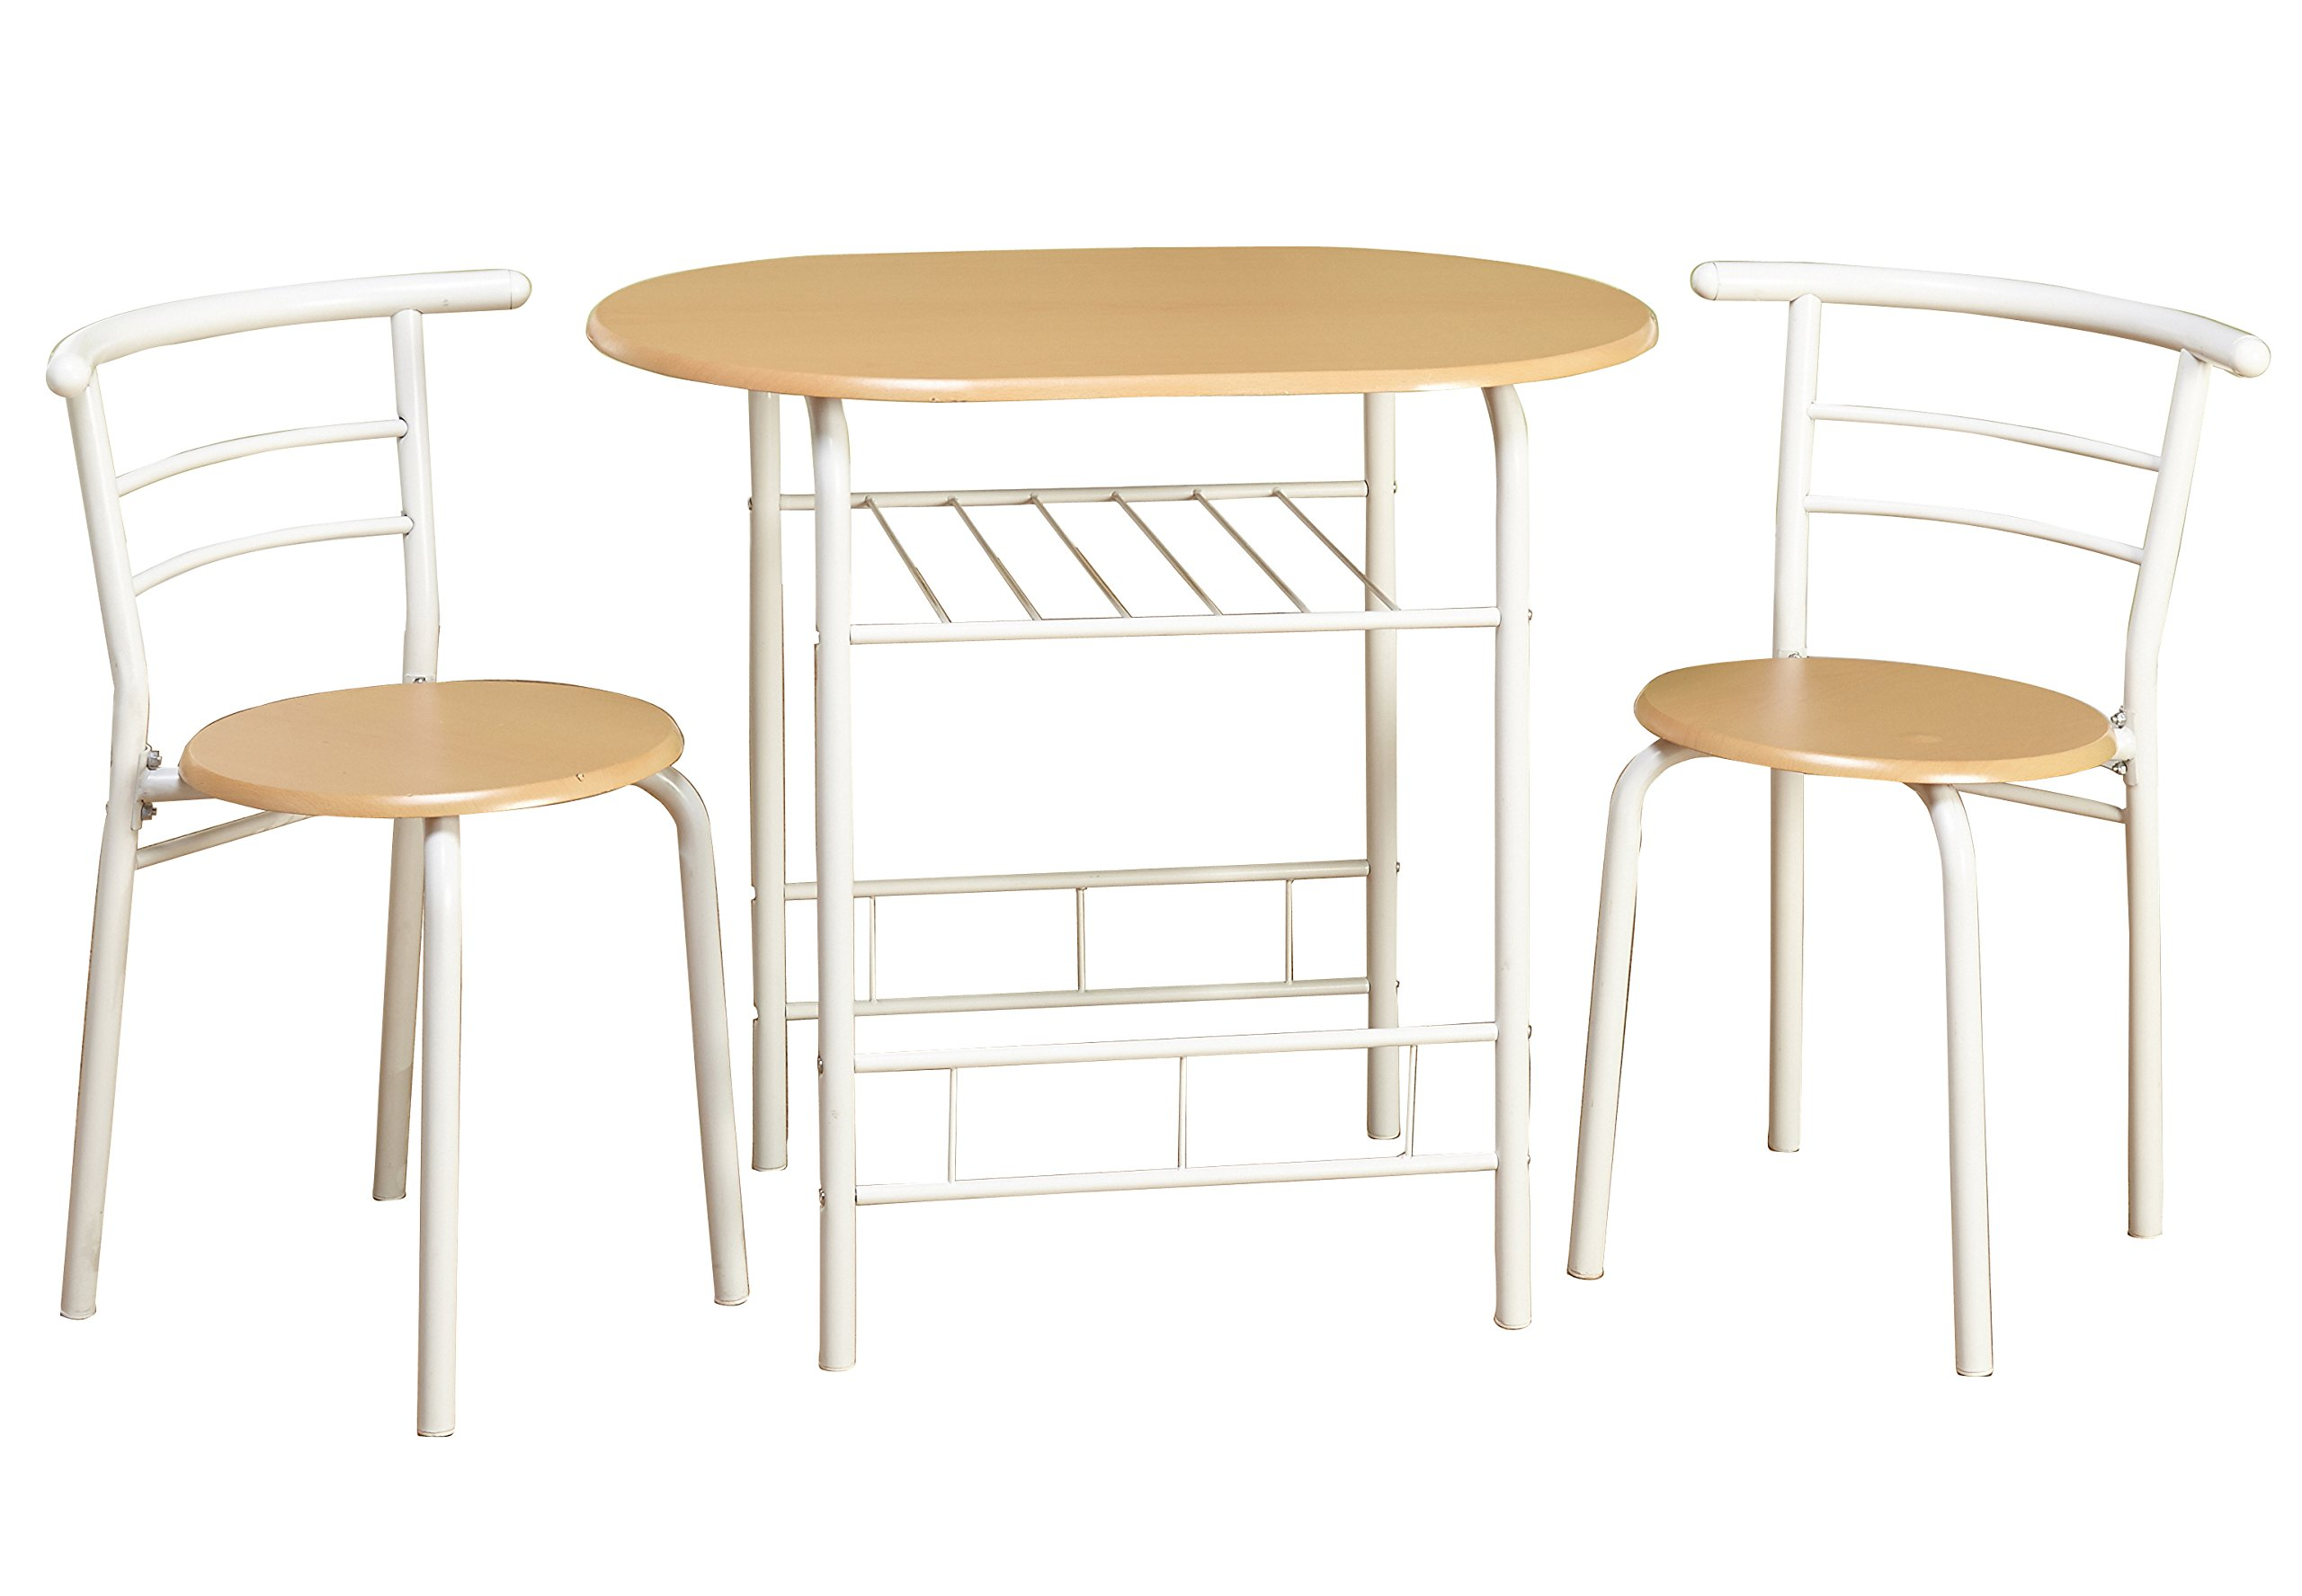 Target Marketing Systems 3 Piece Two-Toned Bistro Dining Set with 2 Mid-Back Chairs and 1 Round Pedestal Dining Table, White/Natural